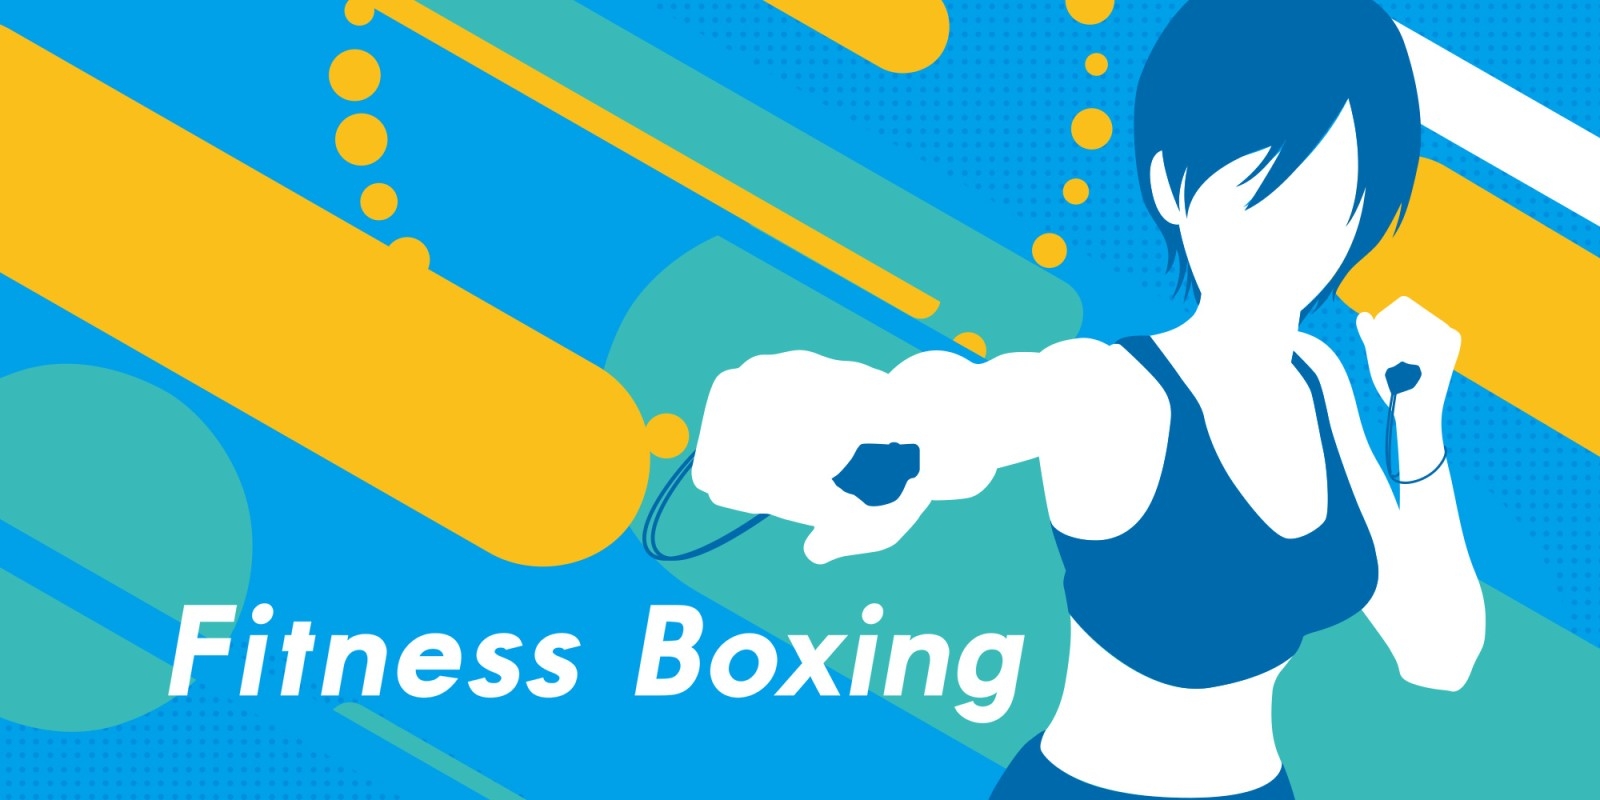 Fitness Boxing shipments have surpassed 300,000 units worldwide